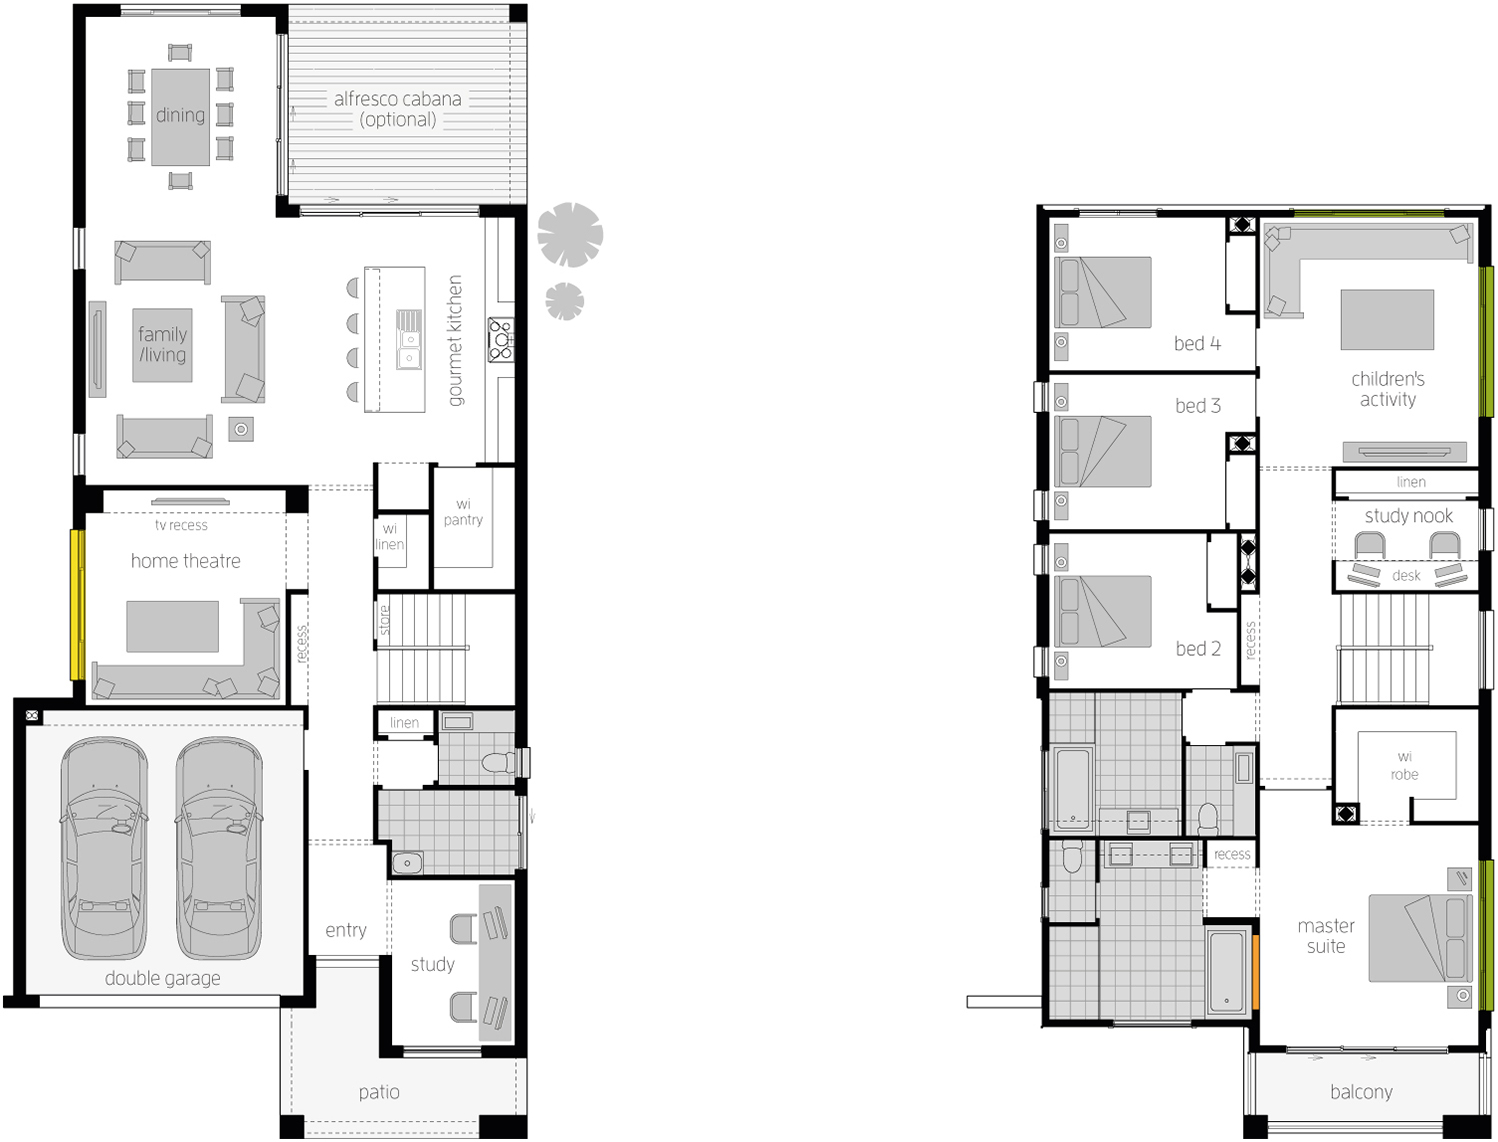 Floor Plan - Stclair Double Storey Home - McDonald Jones